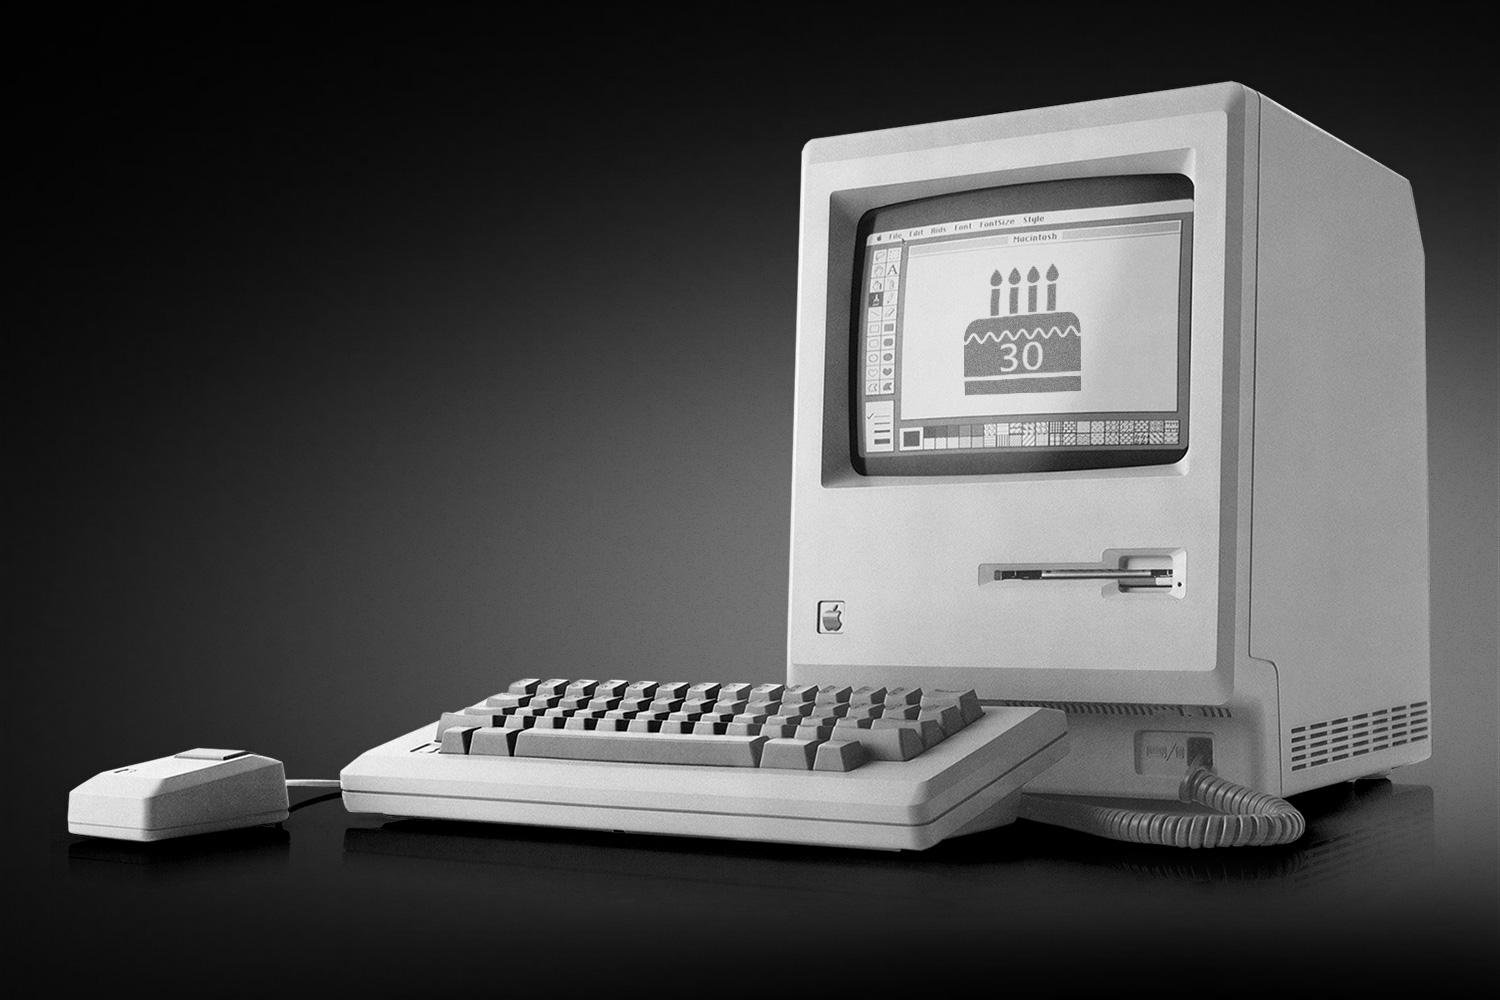 30th-anniversary-of-the-Mac-1984-2014